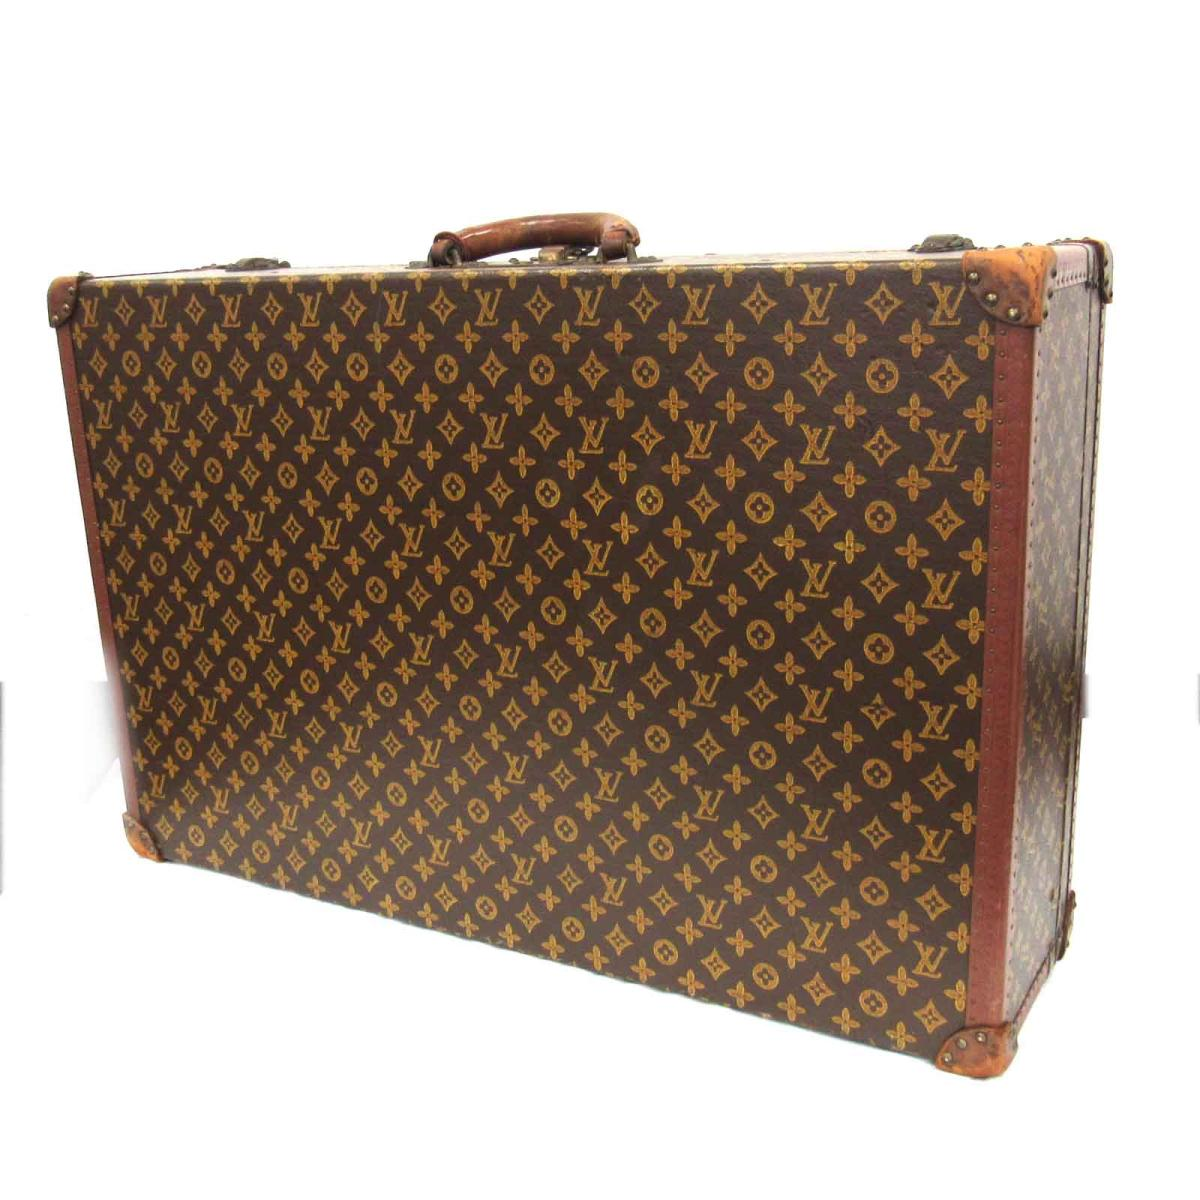 885018a4d5f9 Auth LOUIS VUITTON Hard Case Trunk Monogram canvas Used Vintage Rare item